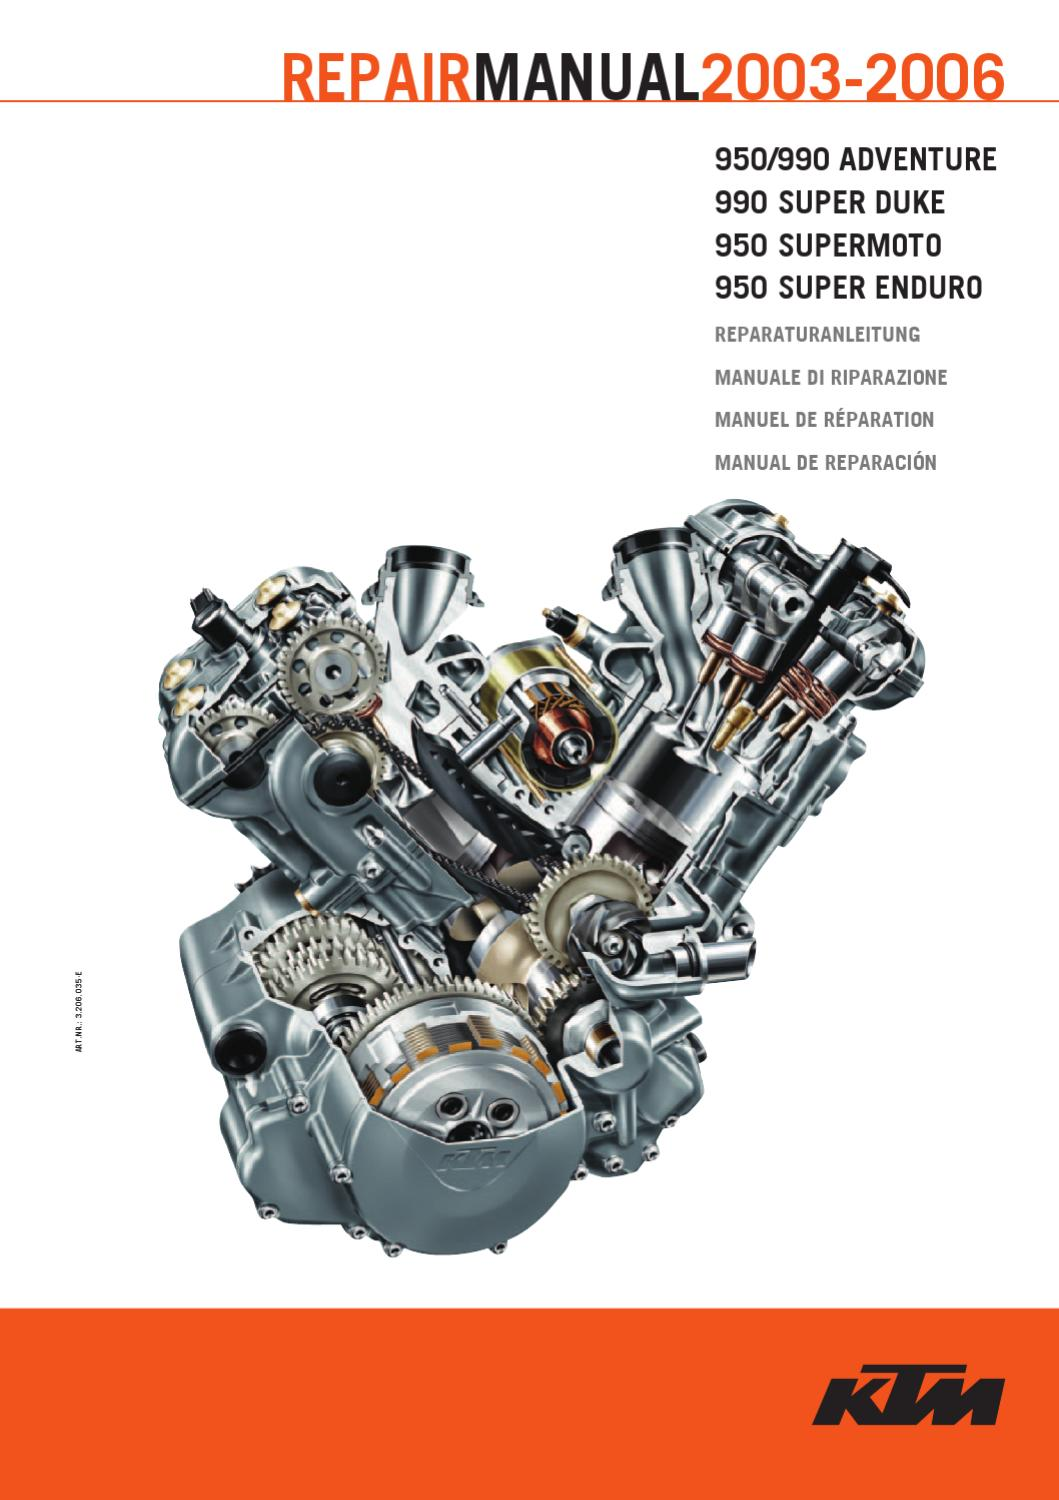 repair manual ktm 990/950 lc8 2003-2006 by ktm lc8 - issuu  issuu